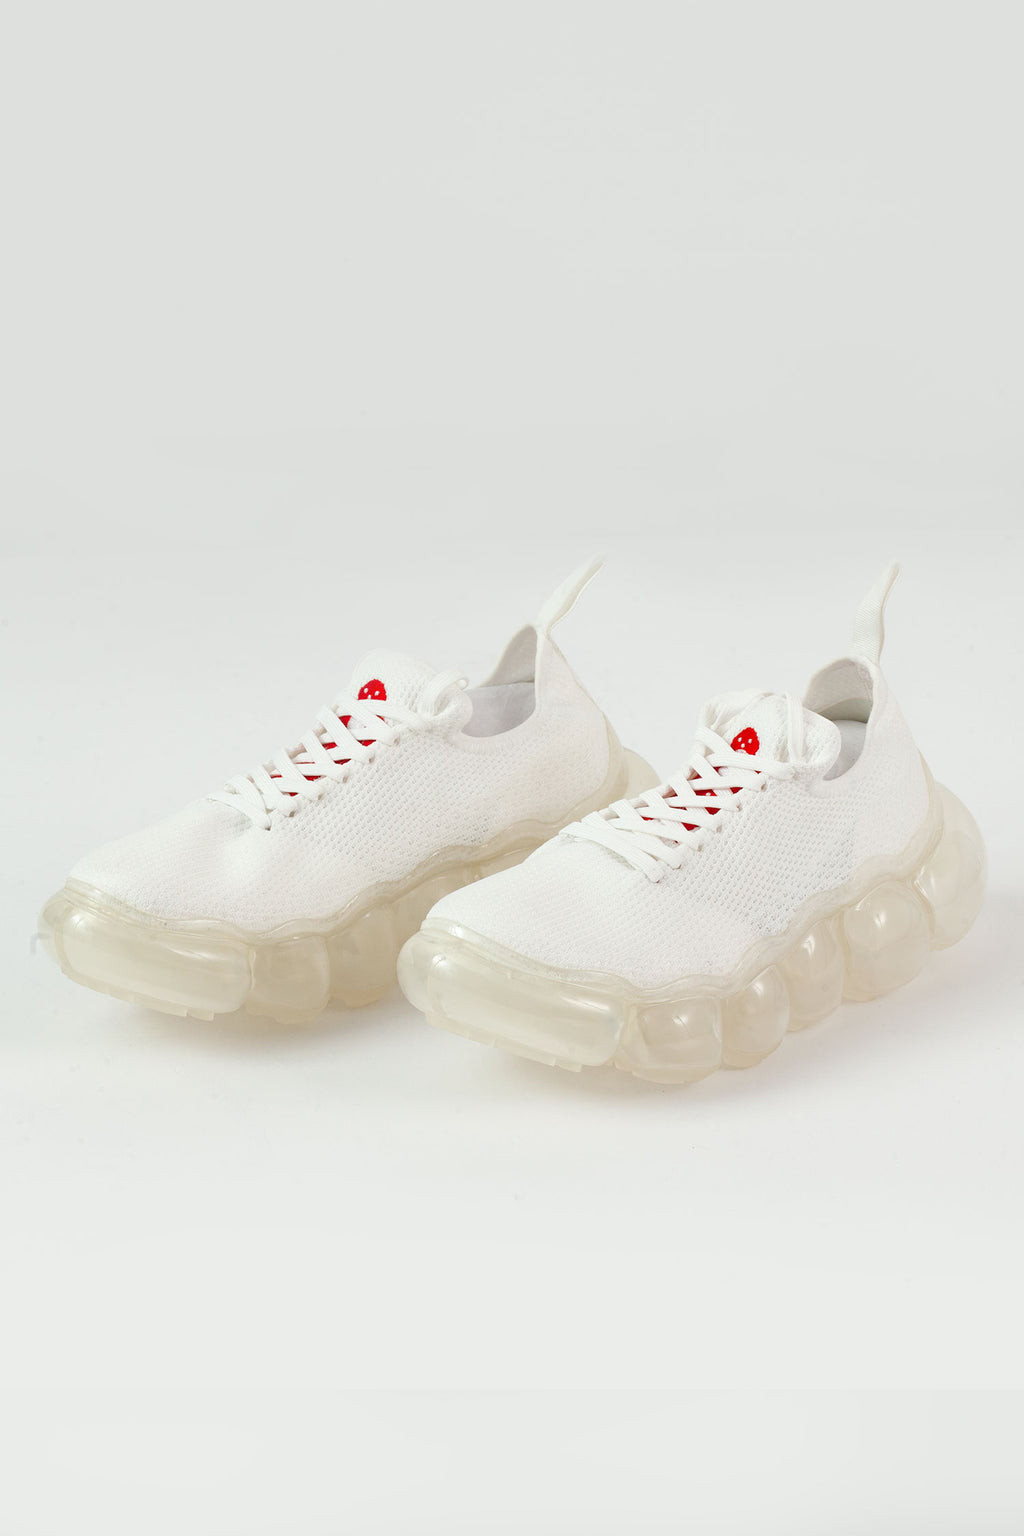 Cloud Sneakers - White